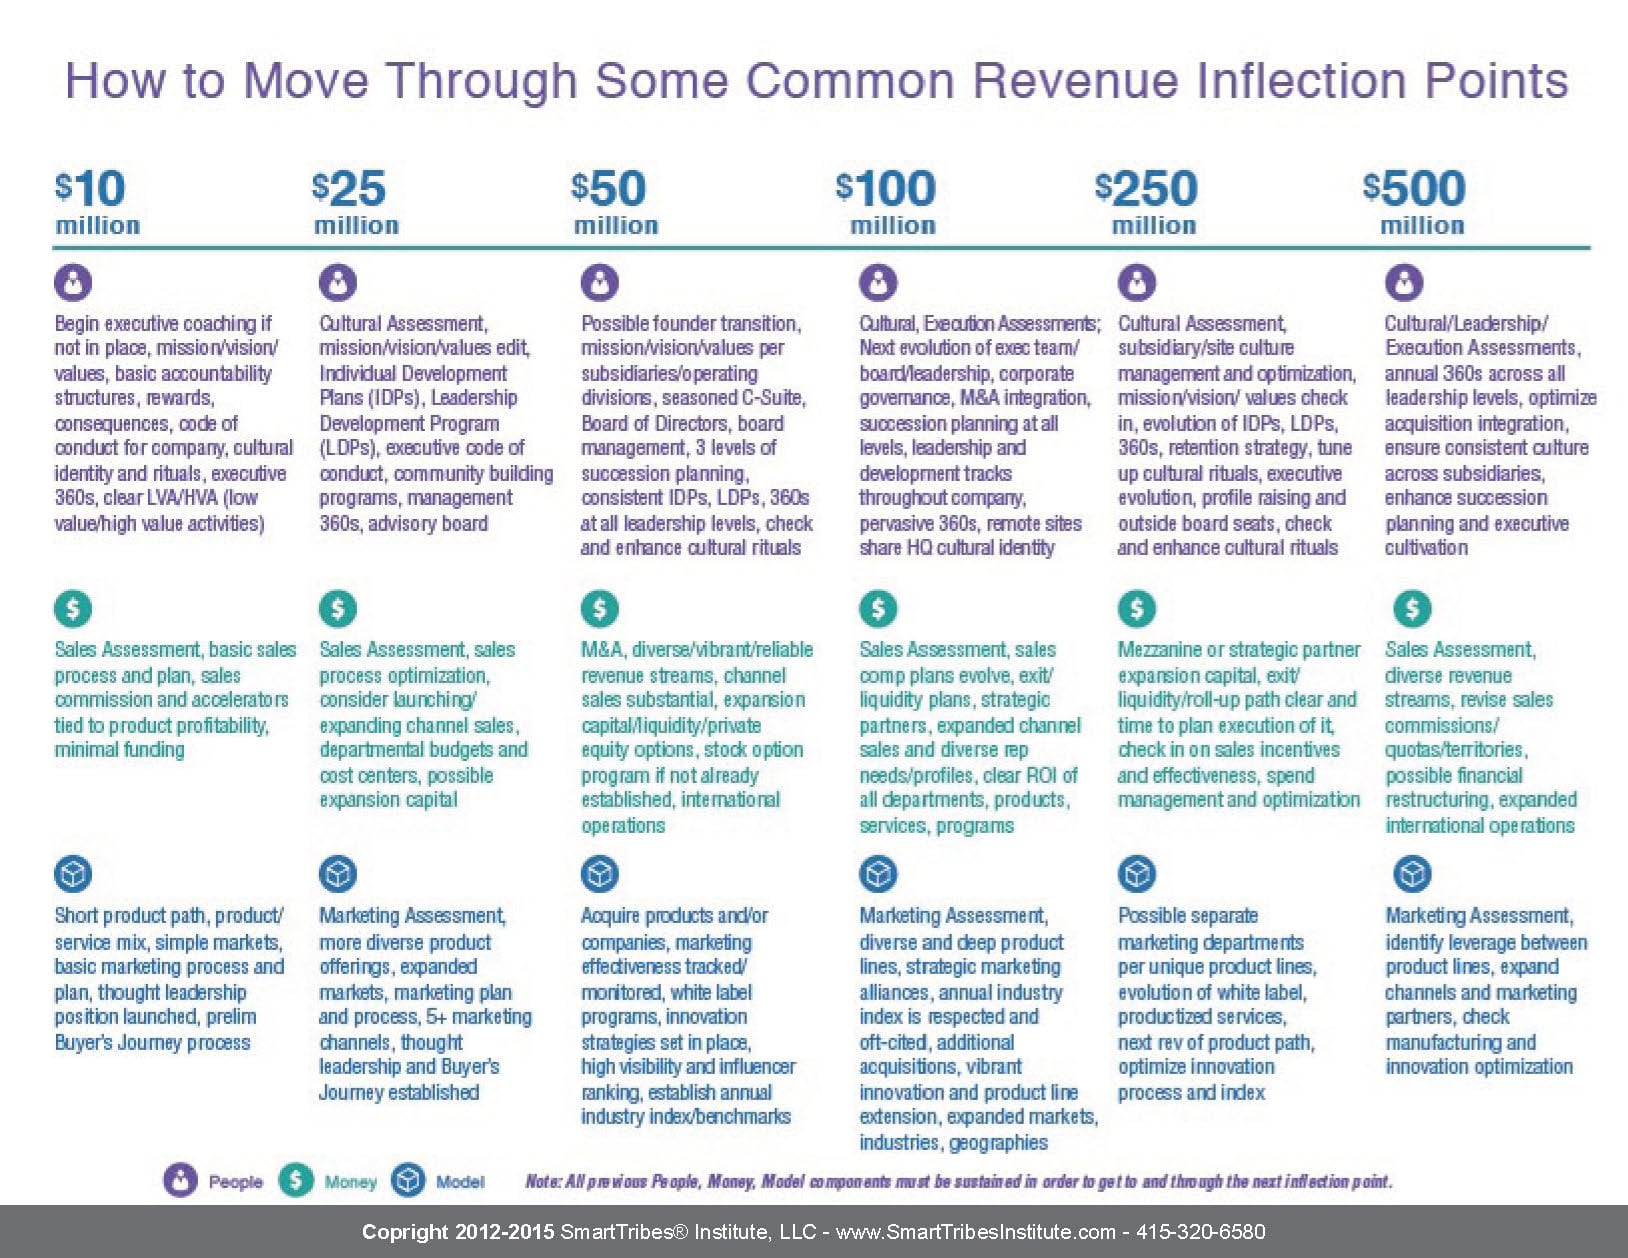 How to Navigate Common Revenue Inflection Points 10 Million to 500 Million